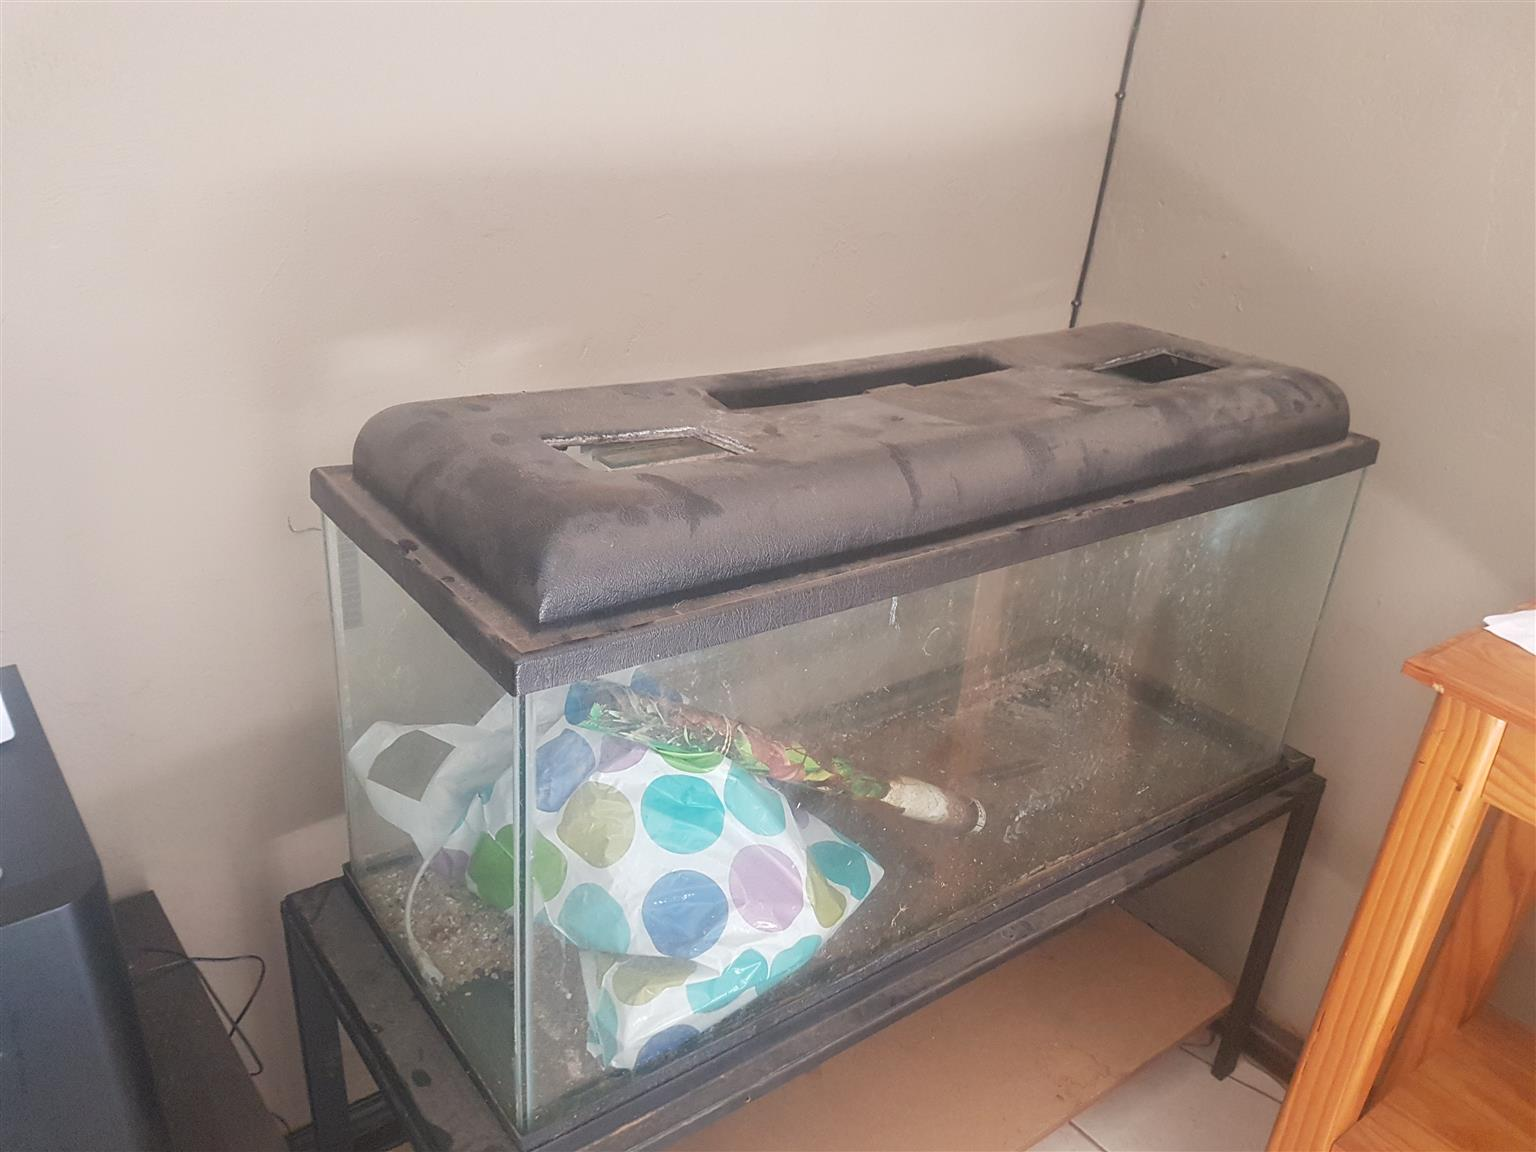 4 Ft fishtank and stand